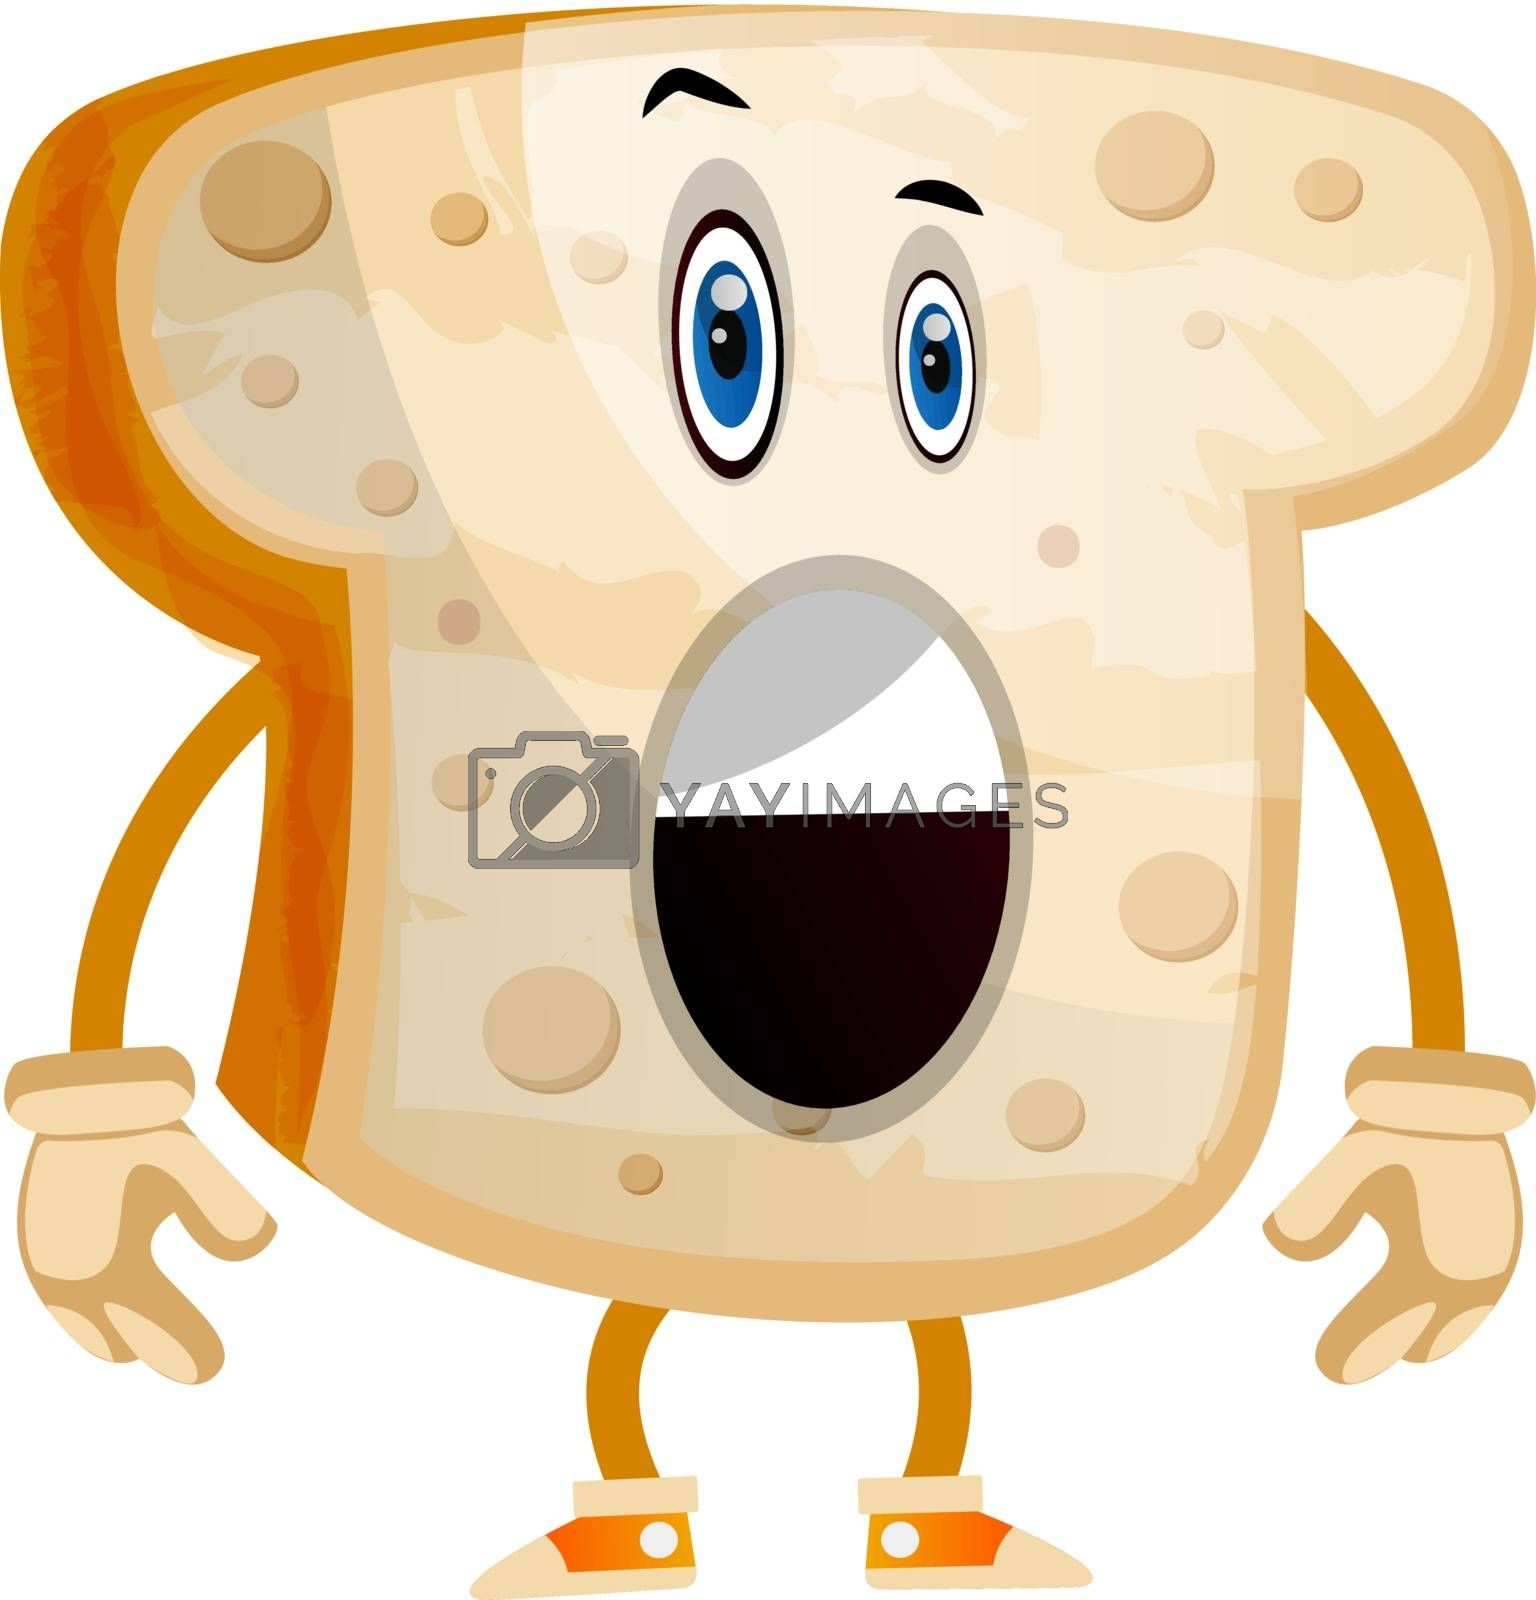 Royalty free image of Toast illustration vector on white background by Morphart